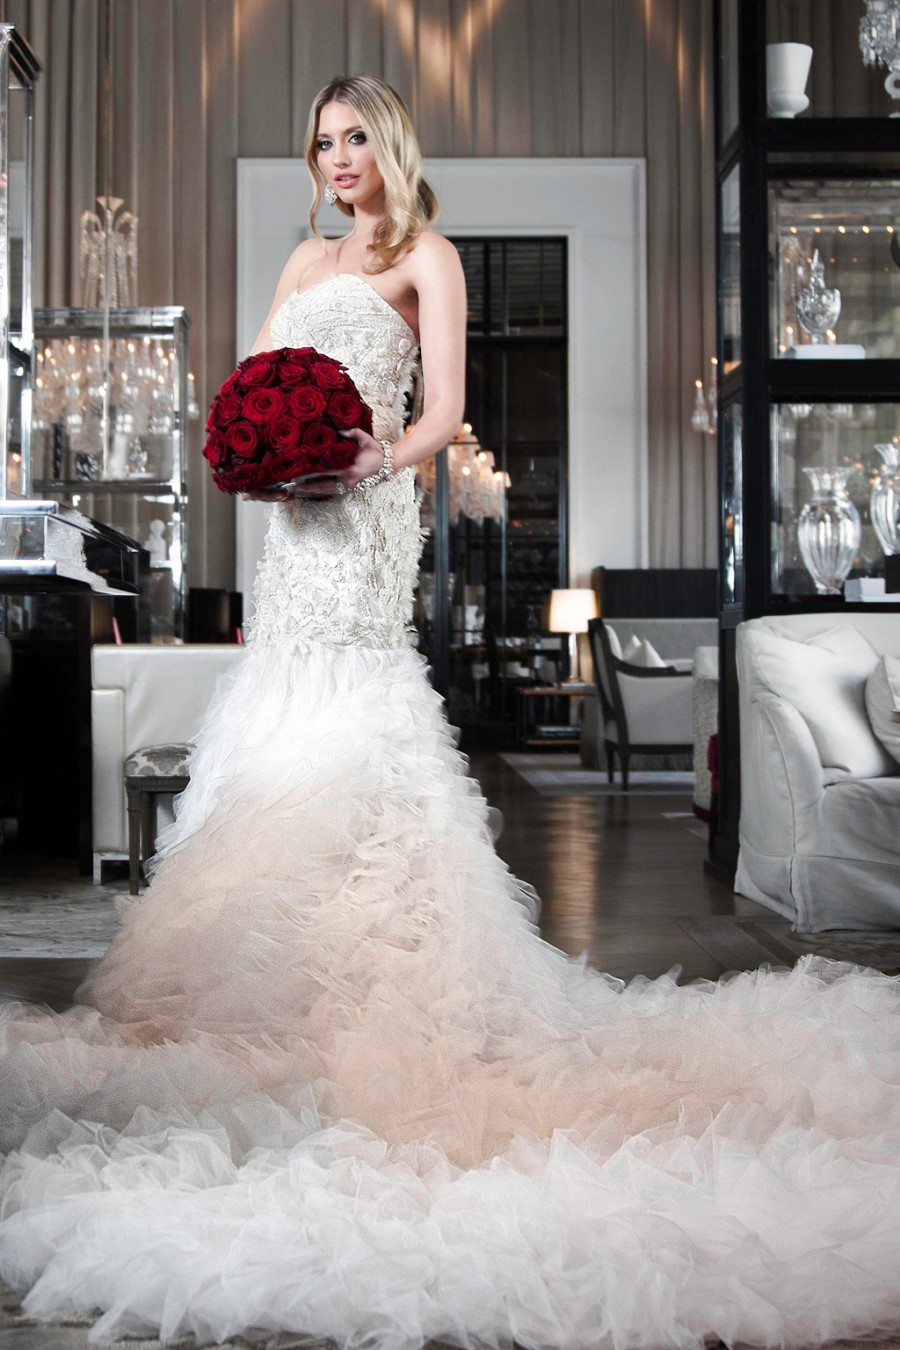 Contemporary Wedding Gowns With Dramatic Trains